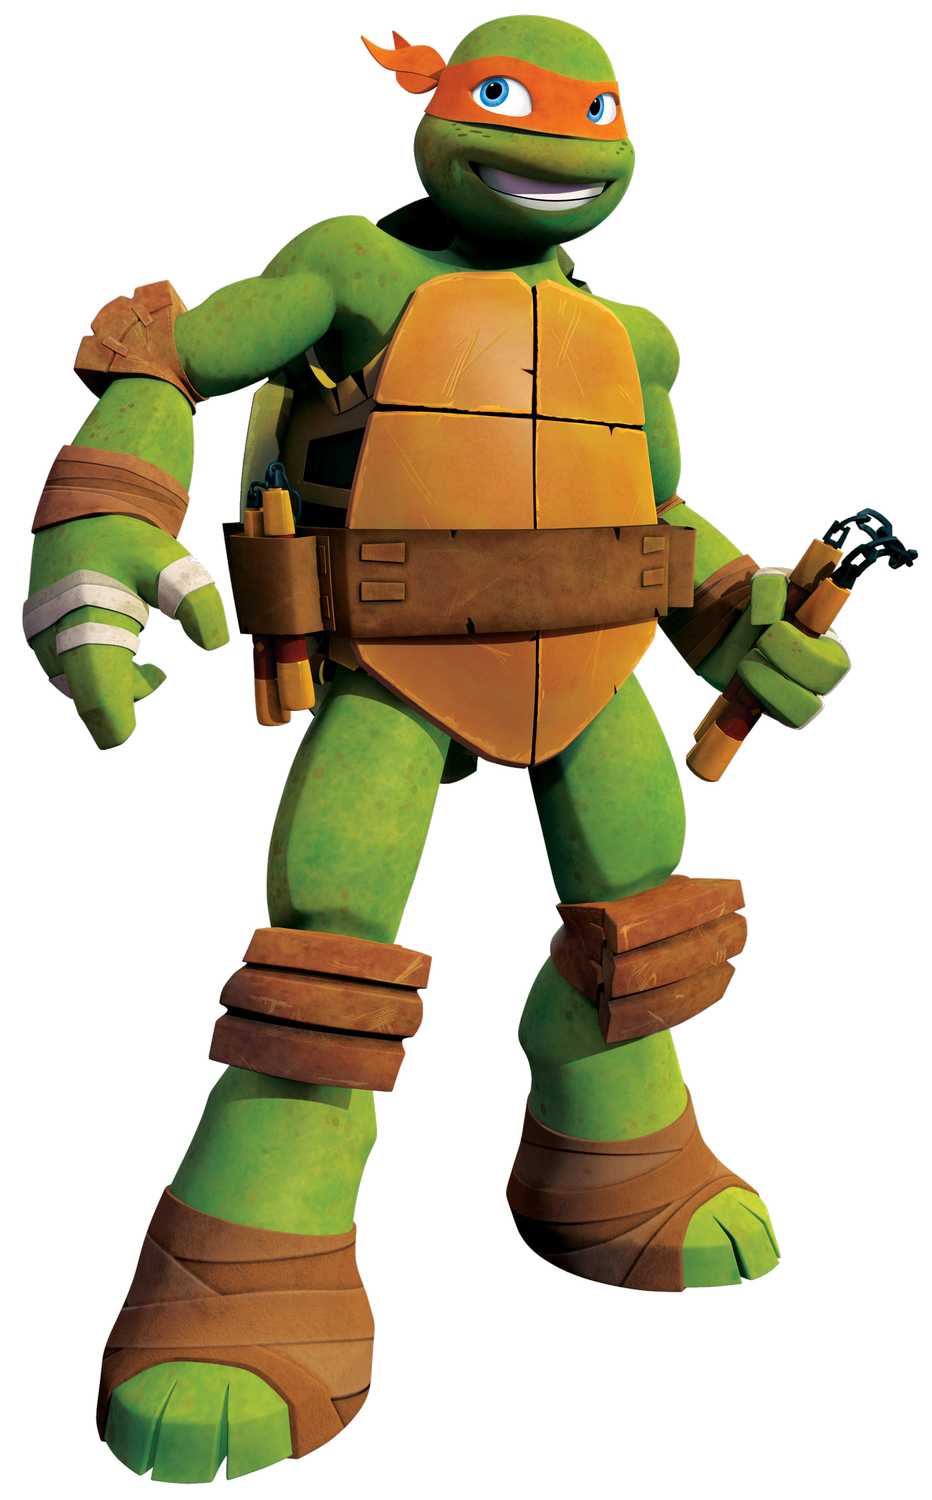 Ninja Tutle Michelangelo Png Image Teenage Ninja Turtles